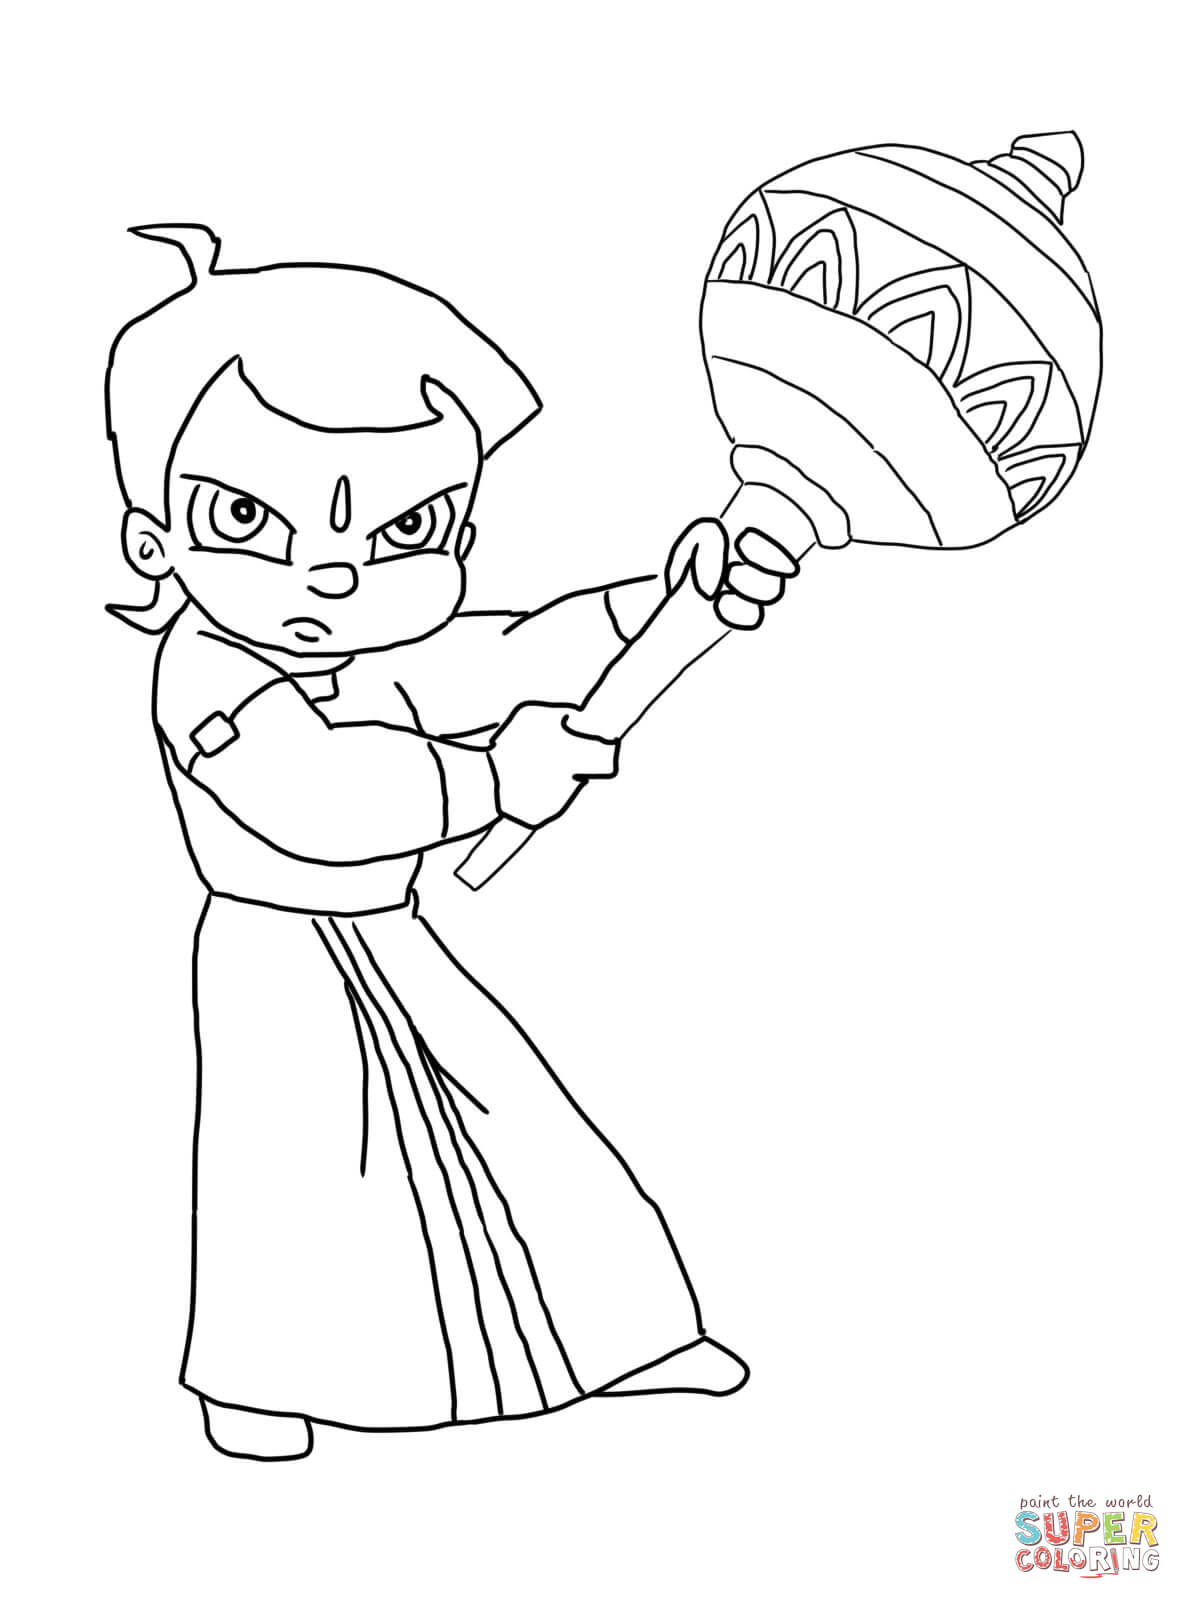 Chhota Bheem And The Curse Of Damyaan Coloring Page Free